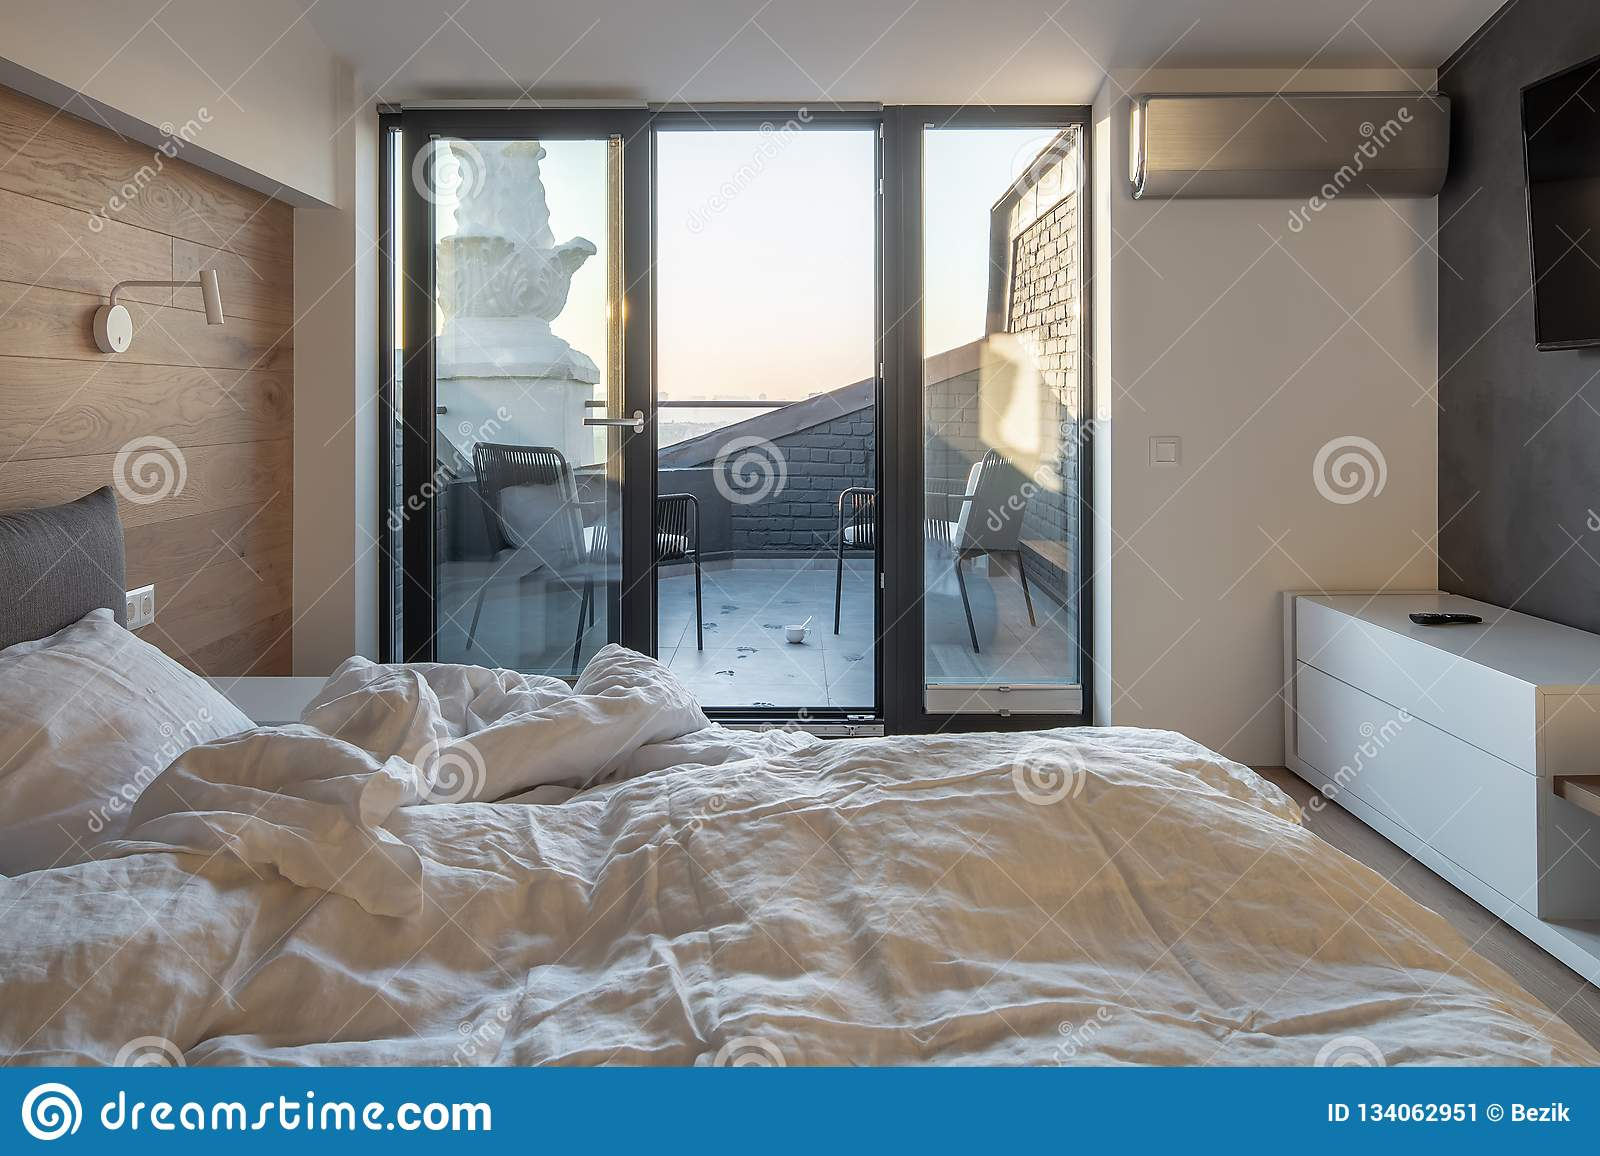 Sunny Bedroom In Modern Style With Light Walls Stock Image